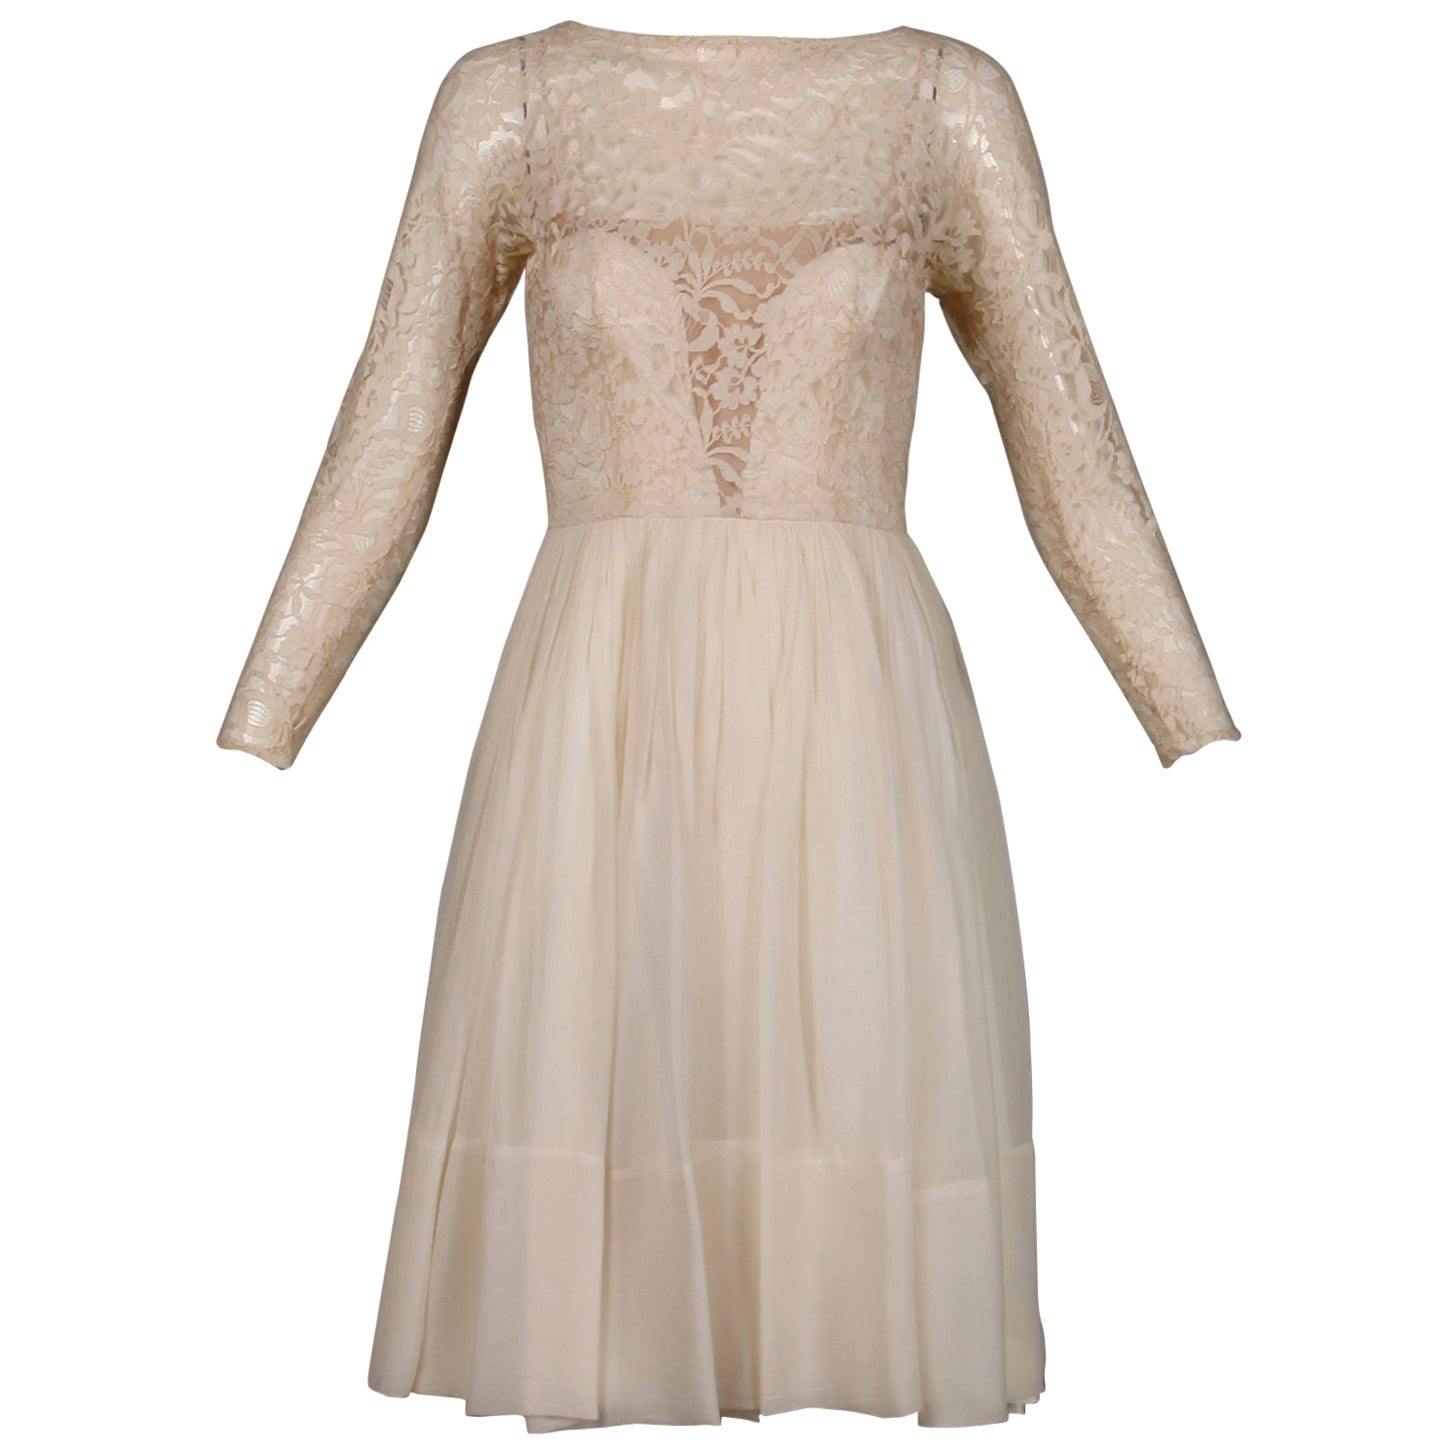 1960s Sandra Sage Vintage Cream Nude Illusion Lace + Silk Chiffon Dress